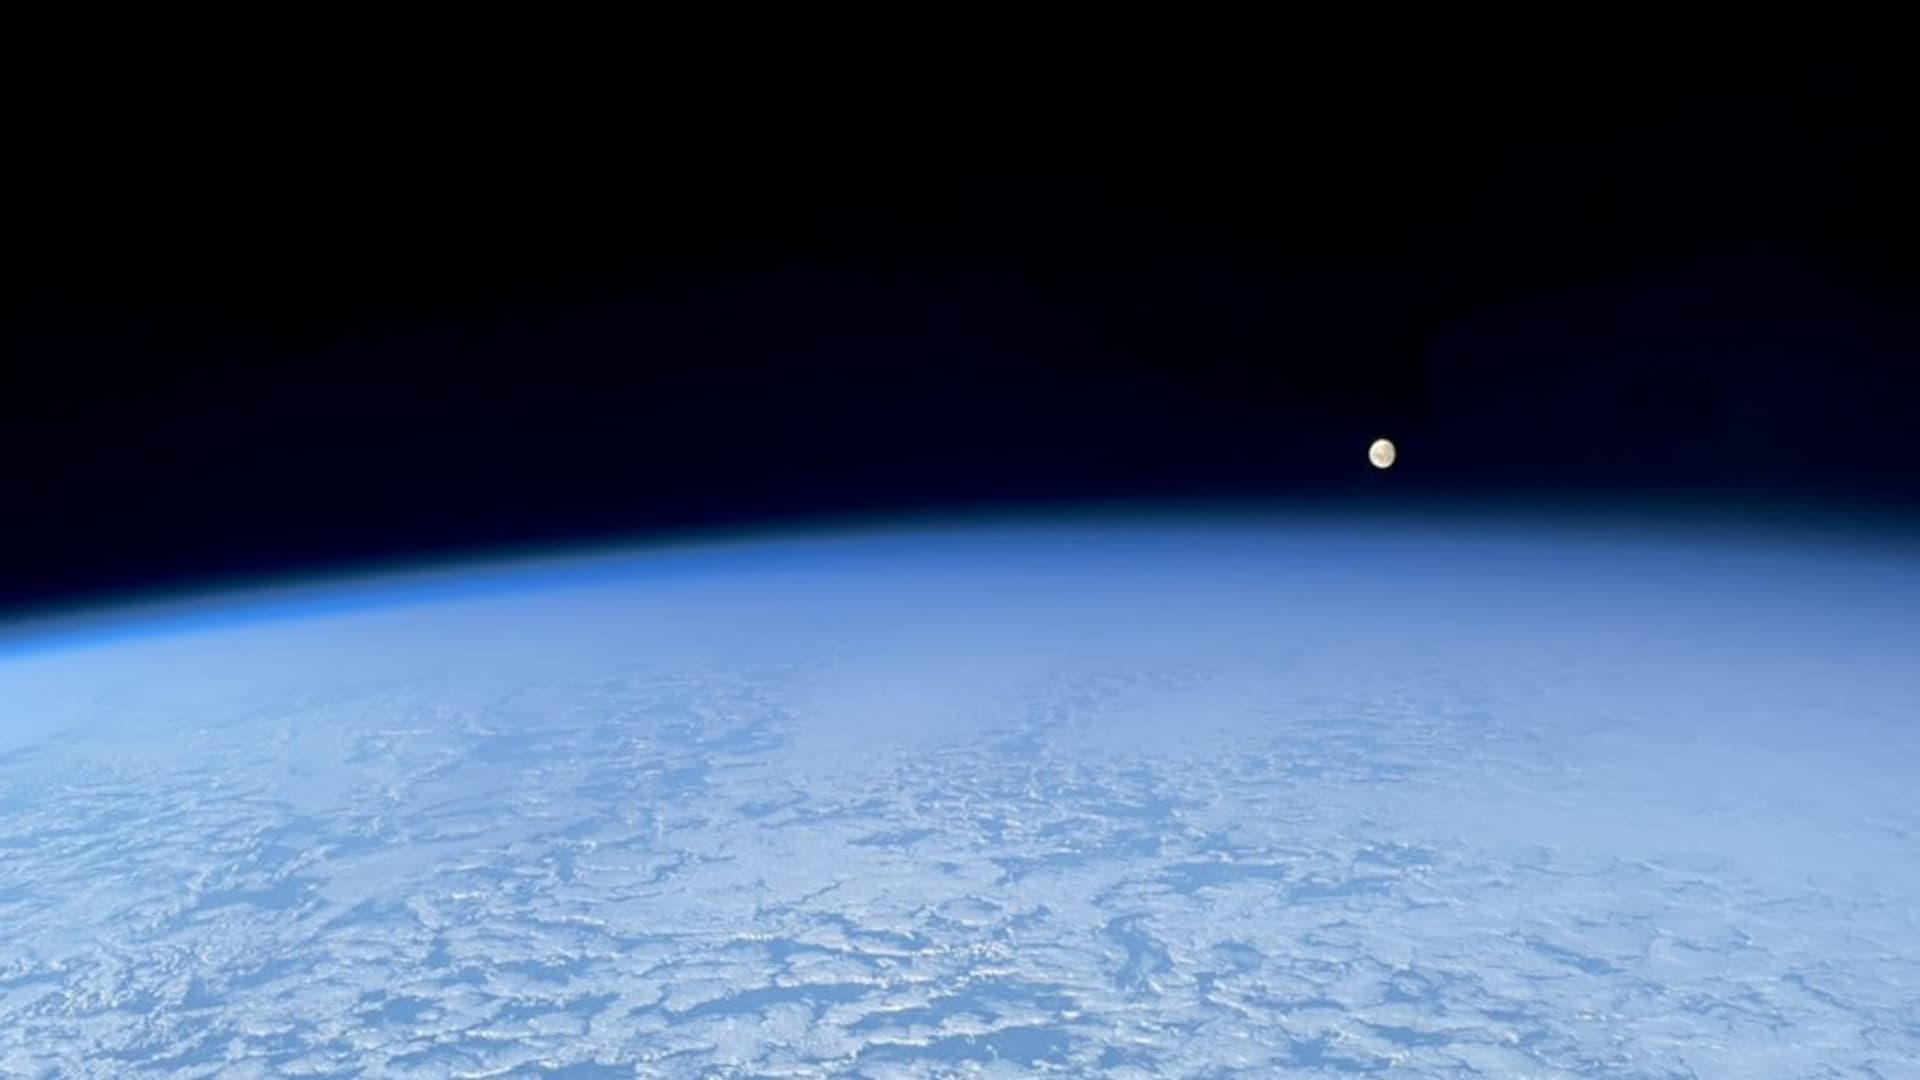 The moon rising in orbit above the edge of the Earth.